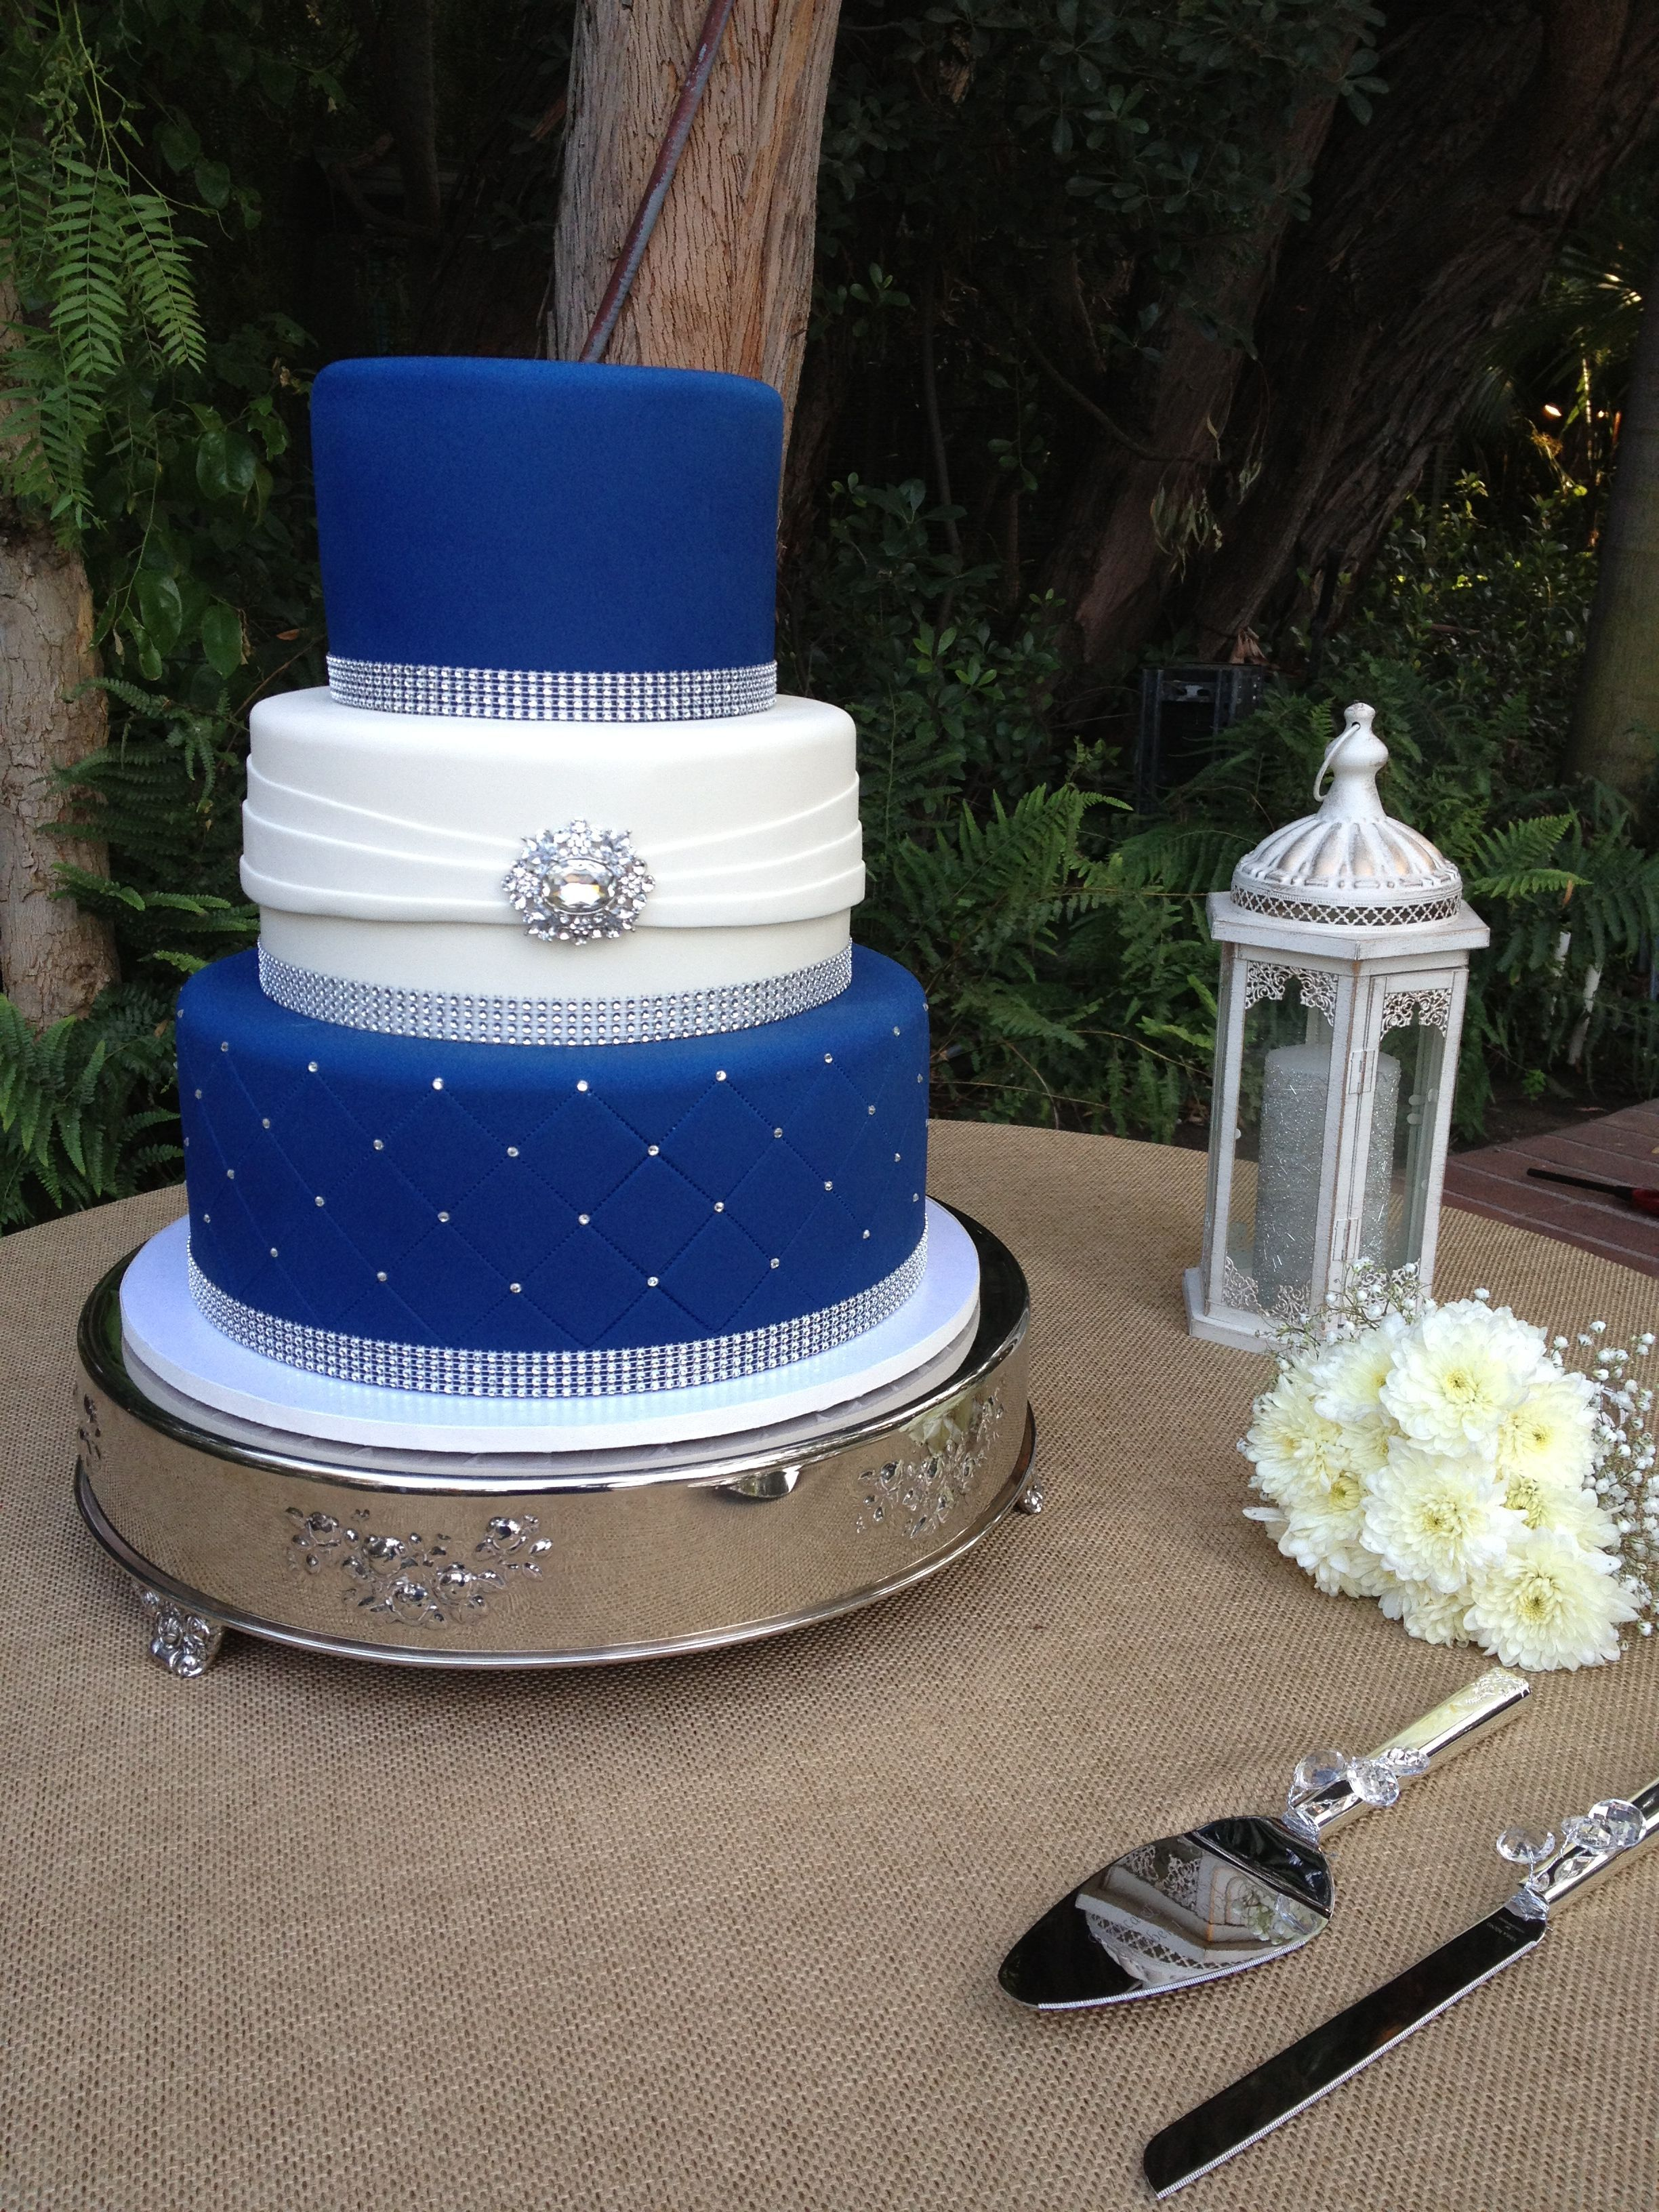 30 Snorkel Blue Wedding Color Ideas for 2018 | Deer Pearl ... |Pink And Blue Wedding Cakes